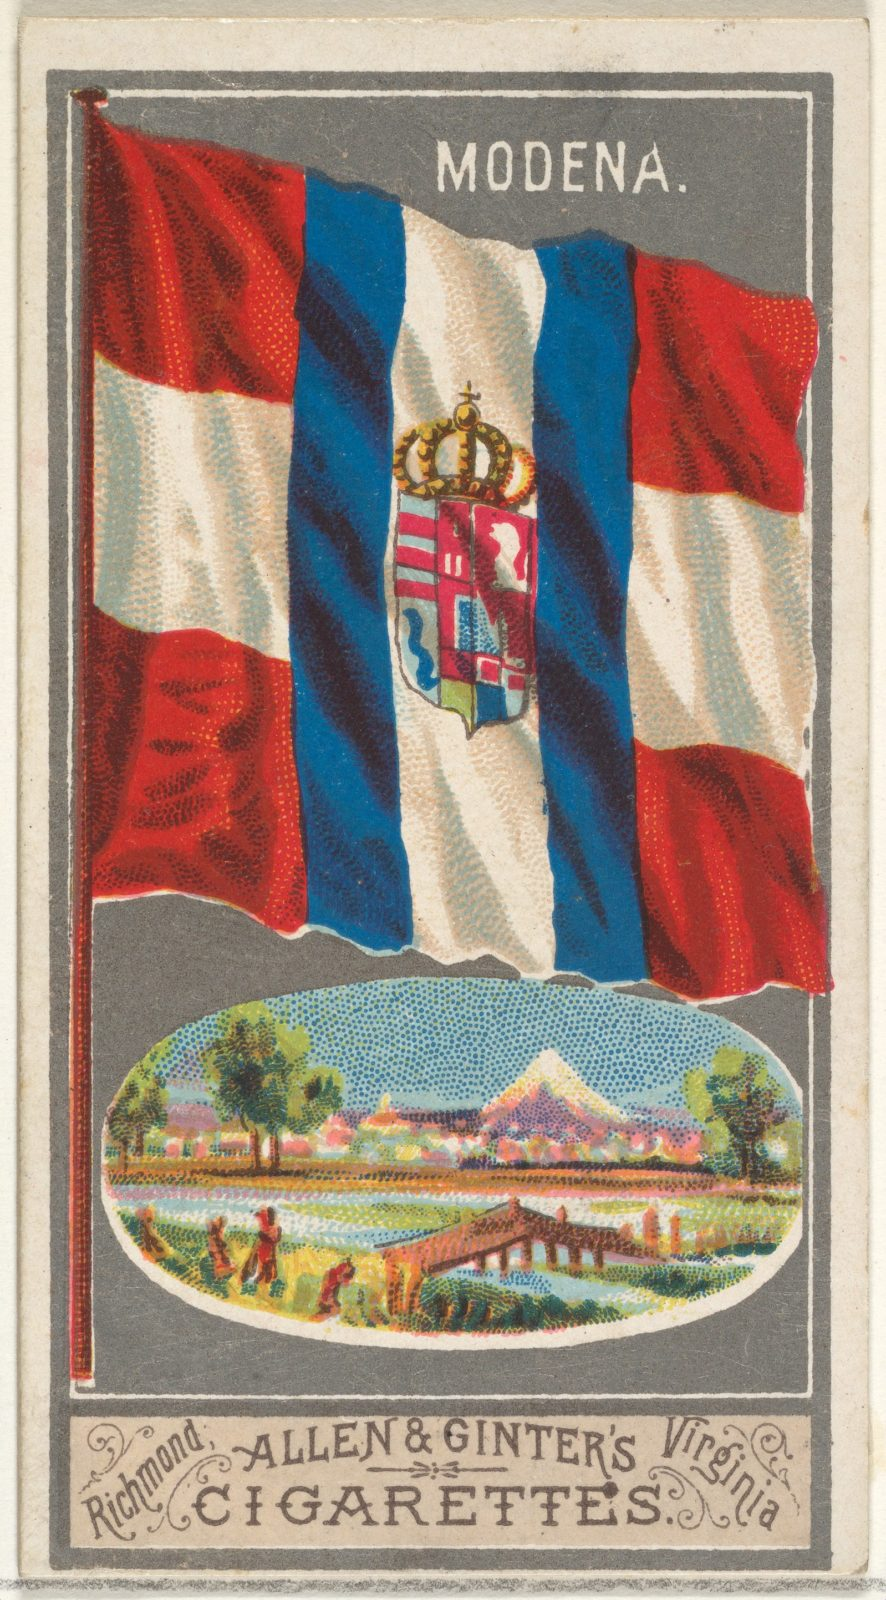 Modena, from the City Flags series (N6) for Allen & Ginter Cigarettes Brands